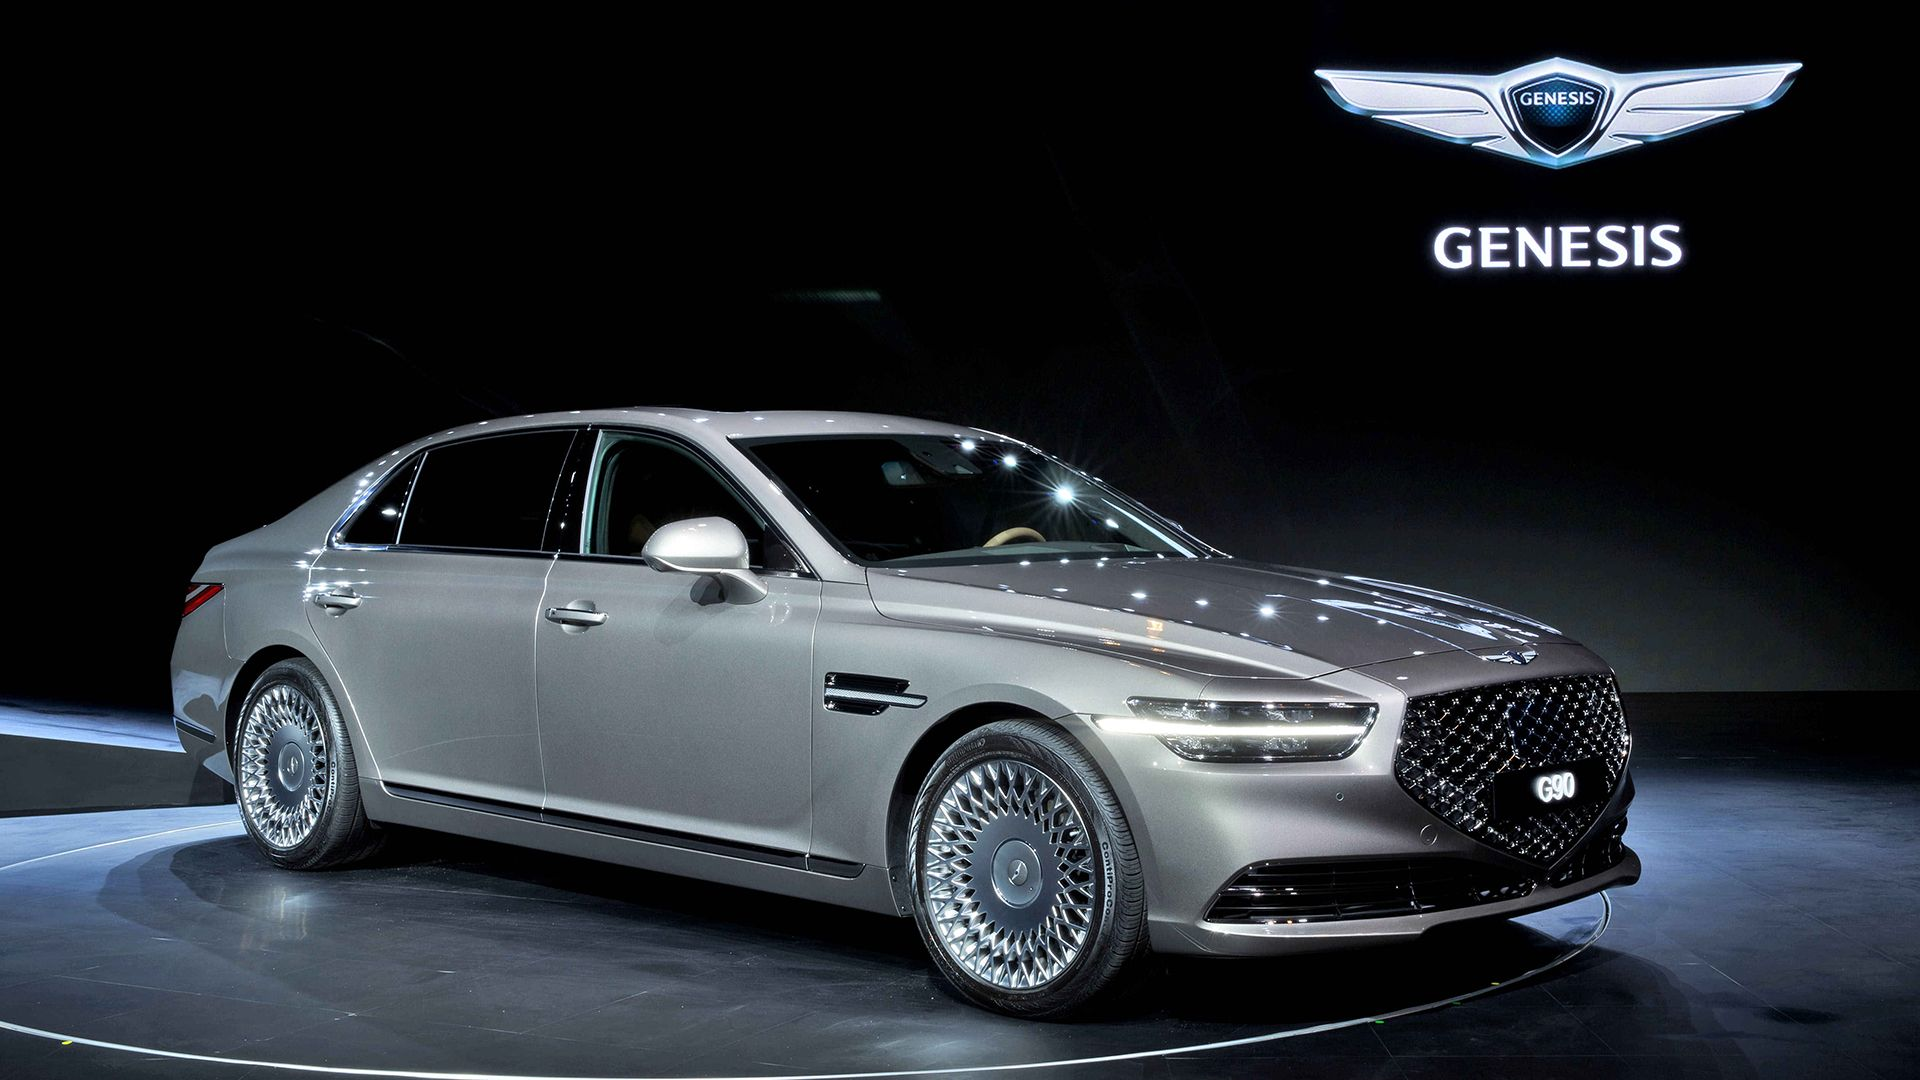 2020 Genesis G90 Flagship Sedan Unveiled Styled For Luxury Hyundai Genesis Hyundai Genesis